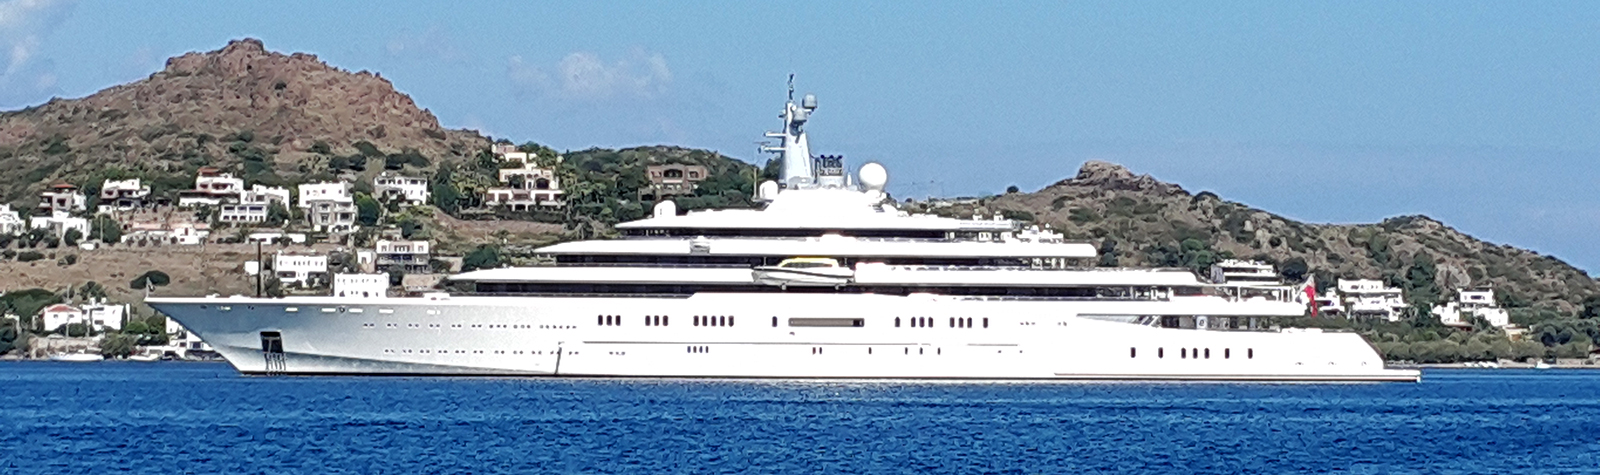 M/Y Eclipse has shown up in  Bodrum first time